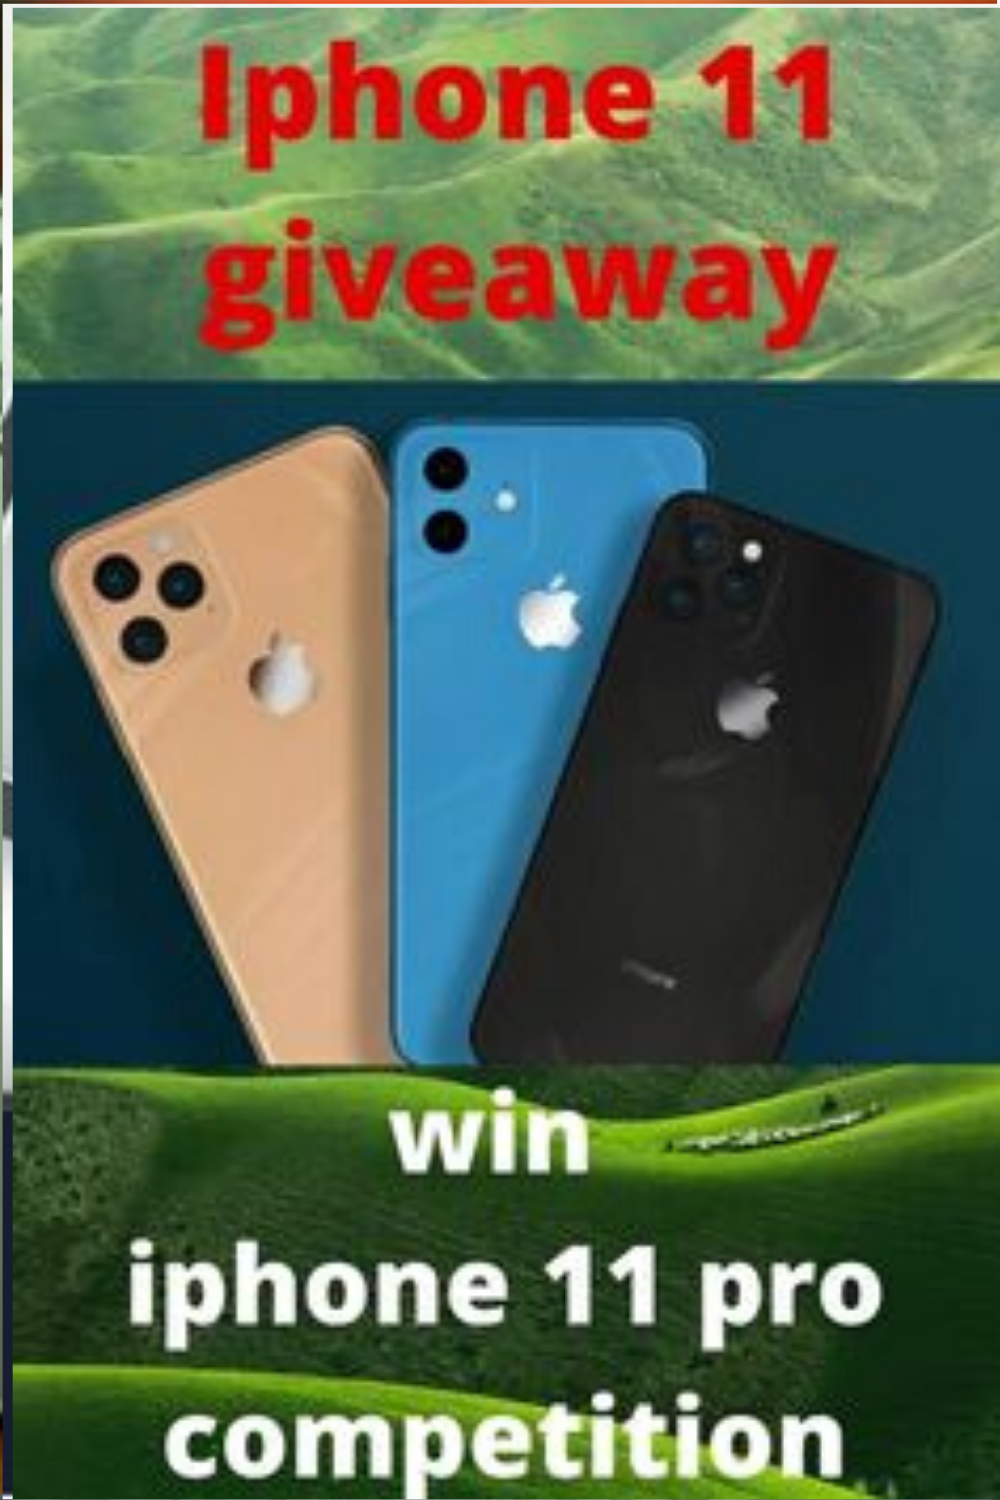 Get Chance to Win iPhone 11!! here is the chance to win iPhone 11 Pro Giveaway